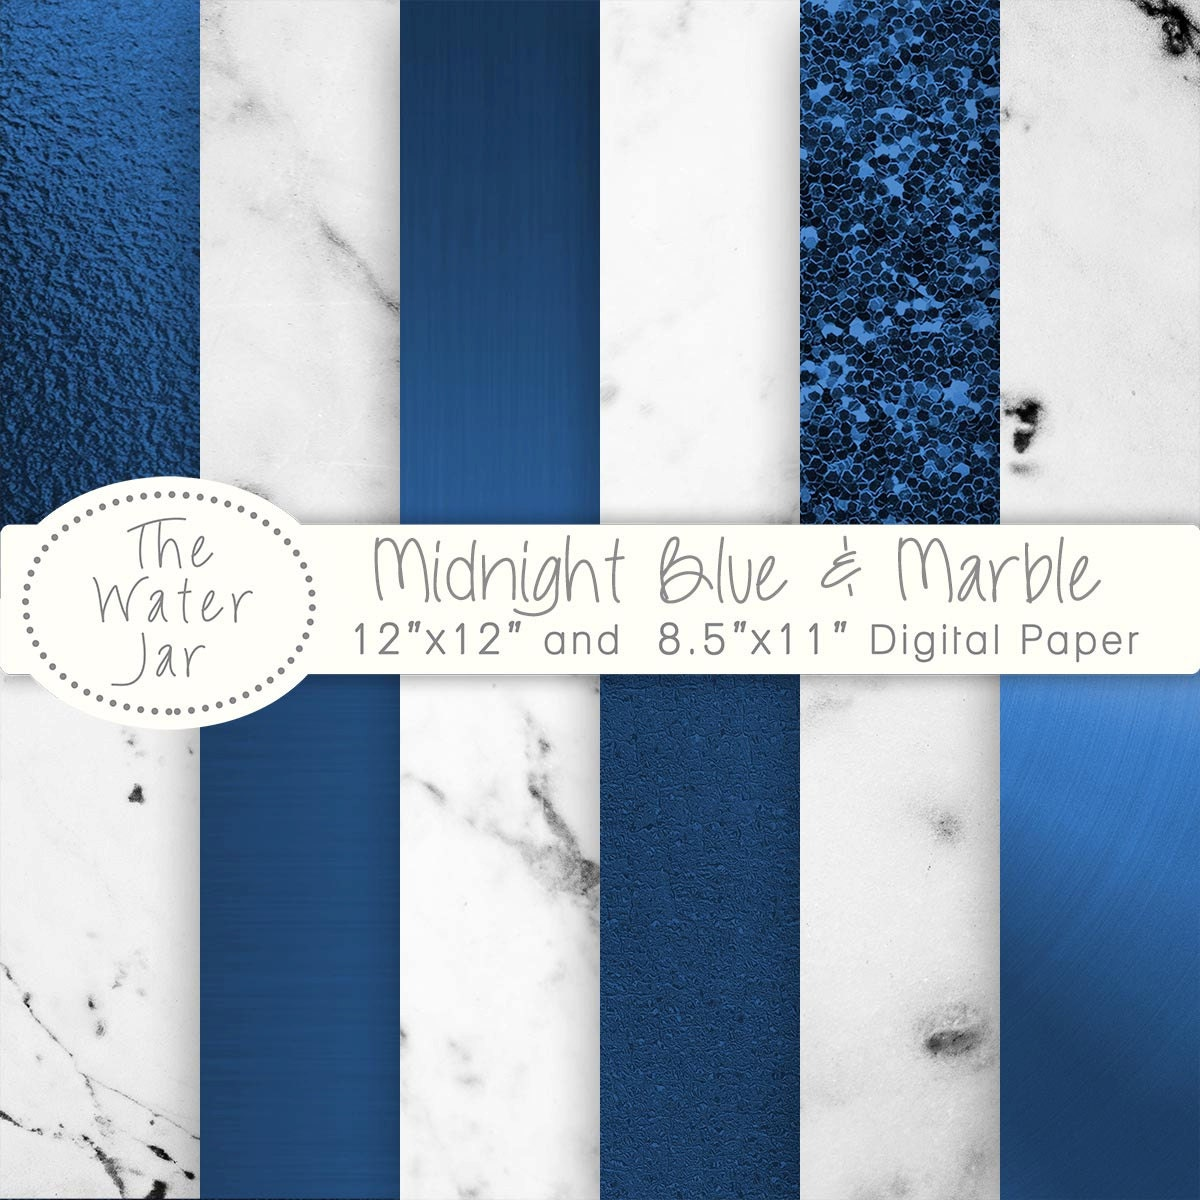 Amazing Wallpaper Marble Paper - il_fullxfull  Graphic_43223.jpg?version\u003d1